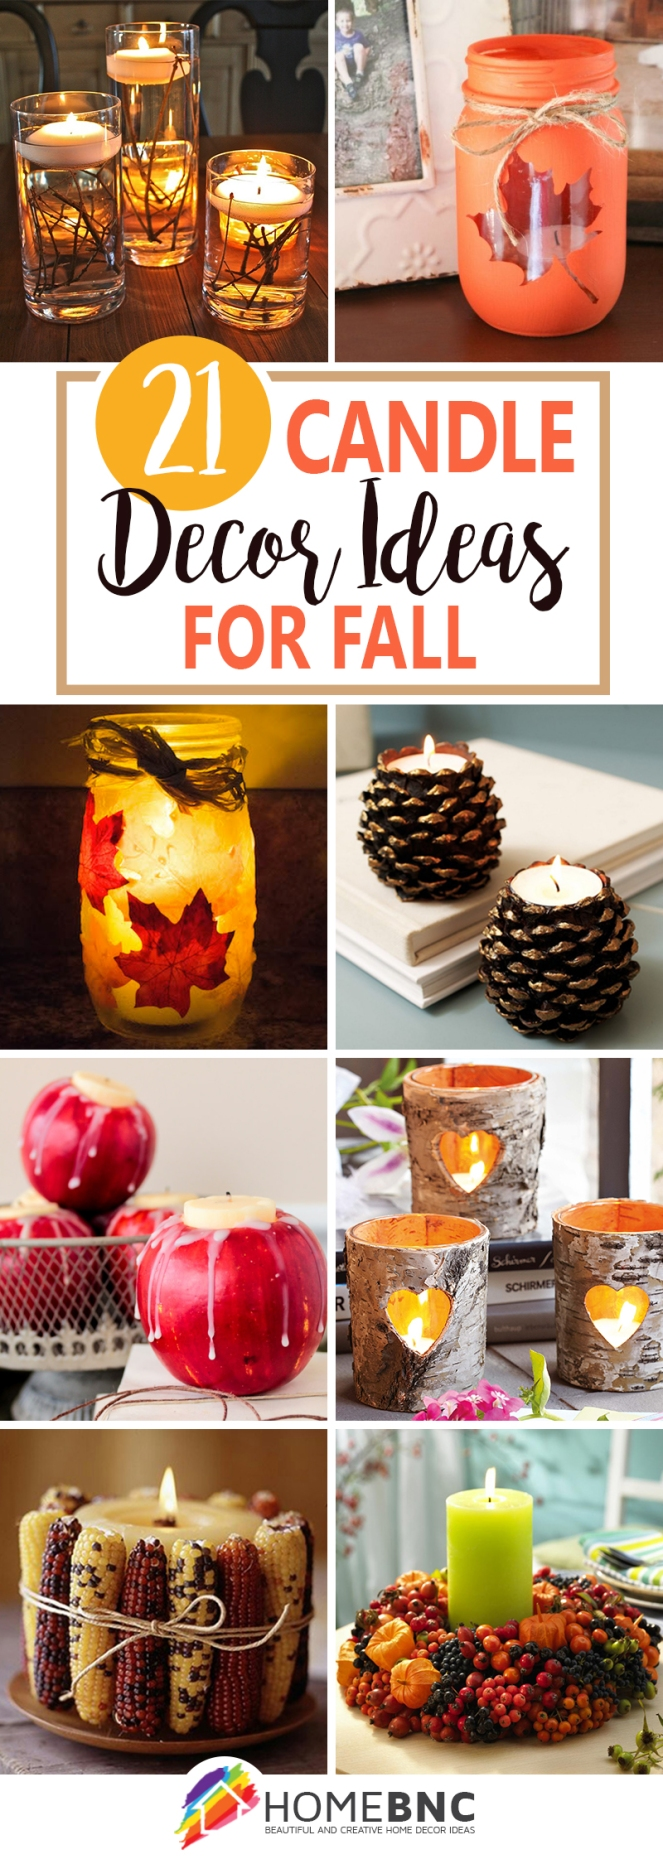 fall-candle-decoration-ideas-pinterest-share-homebnc-4